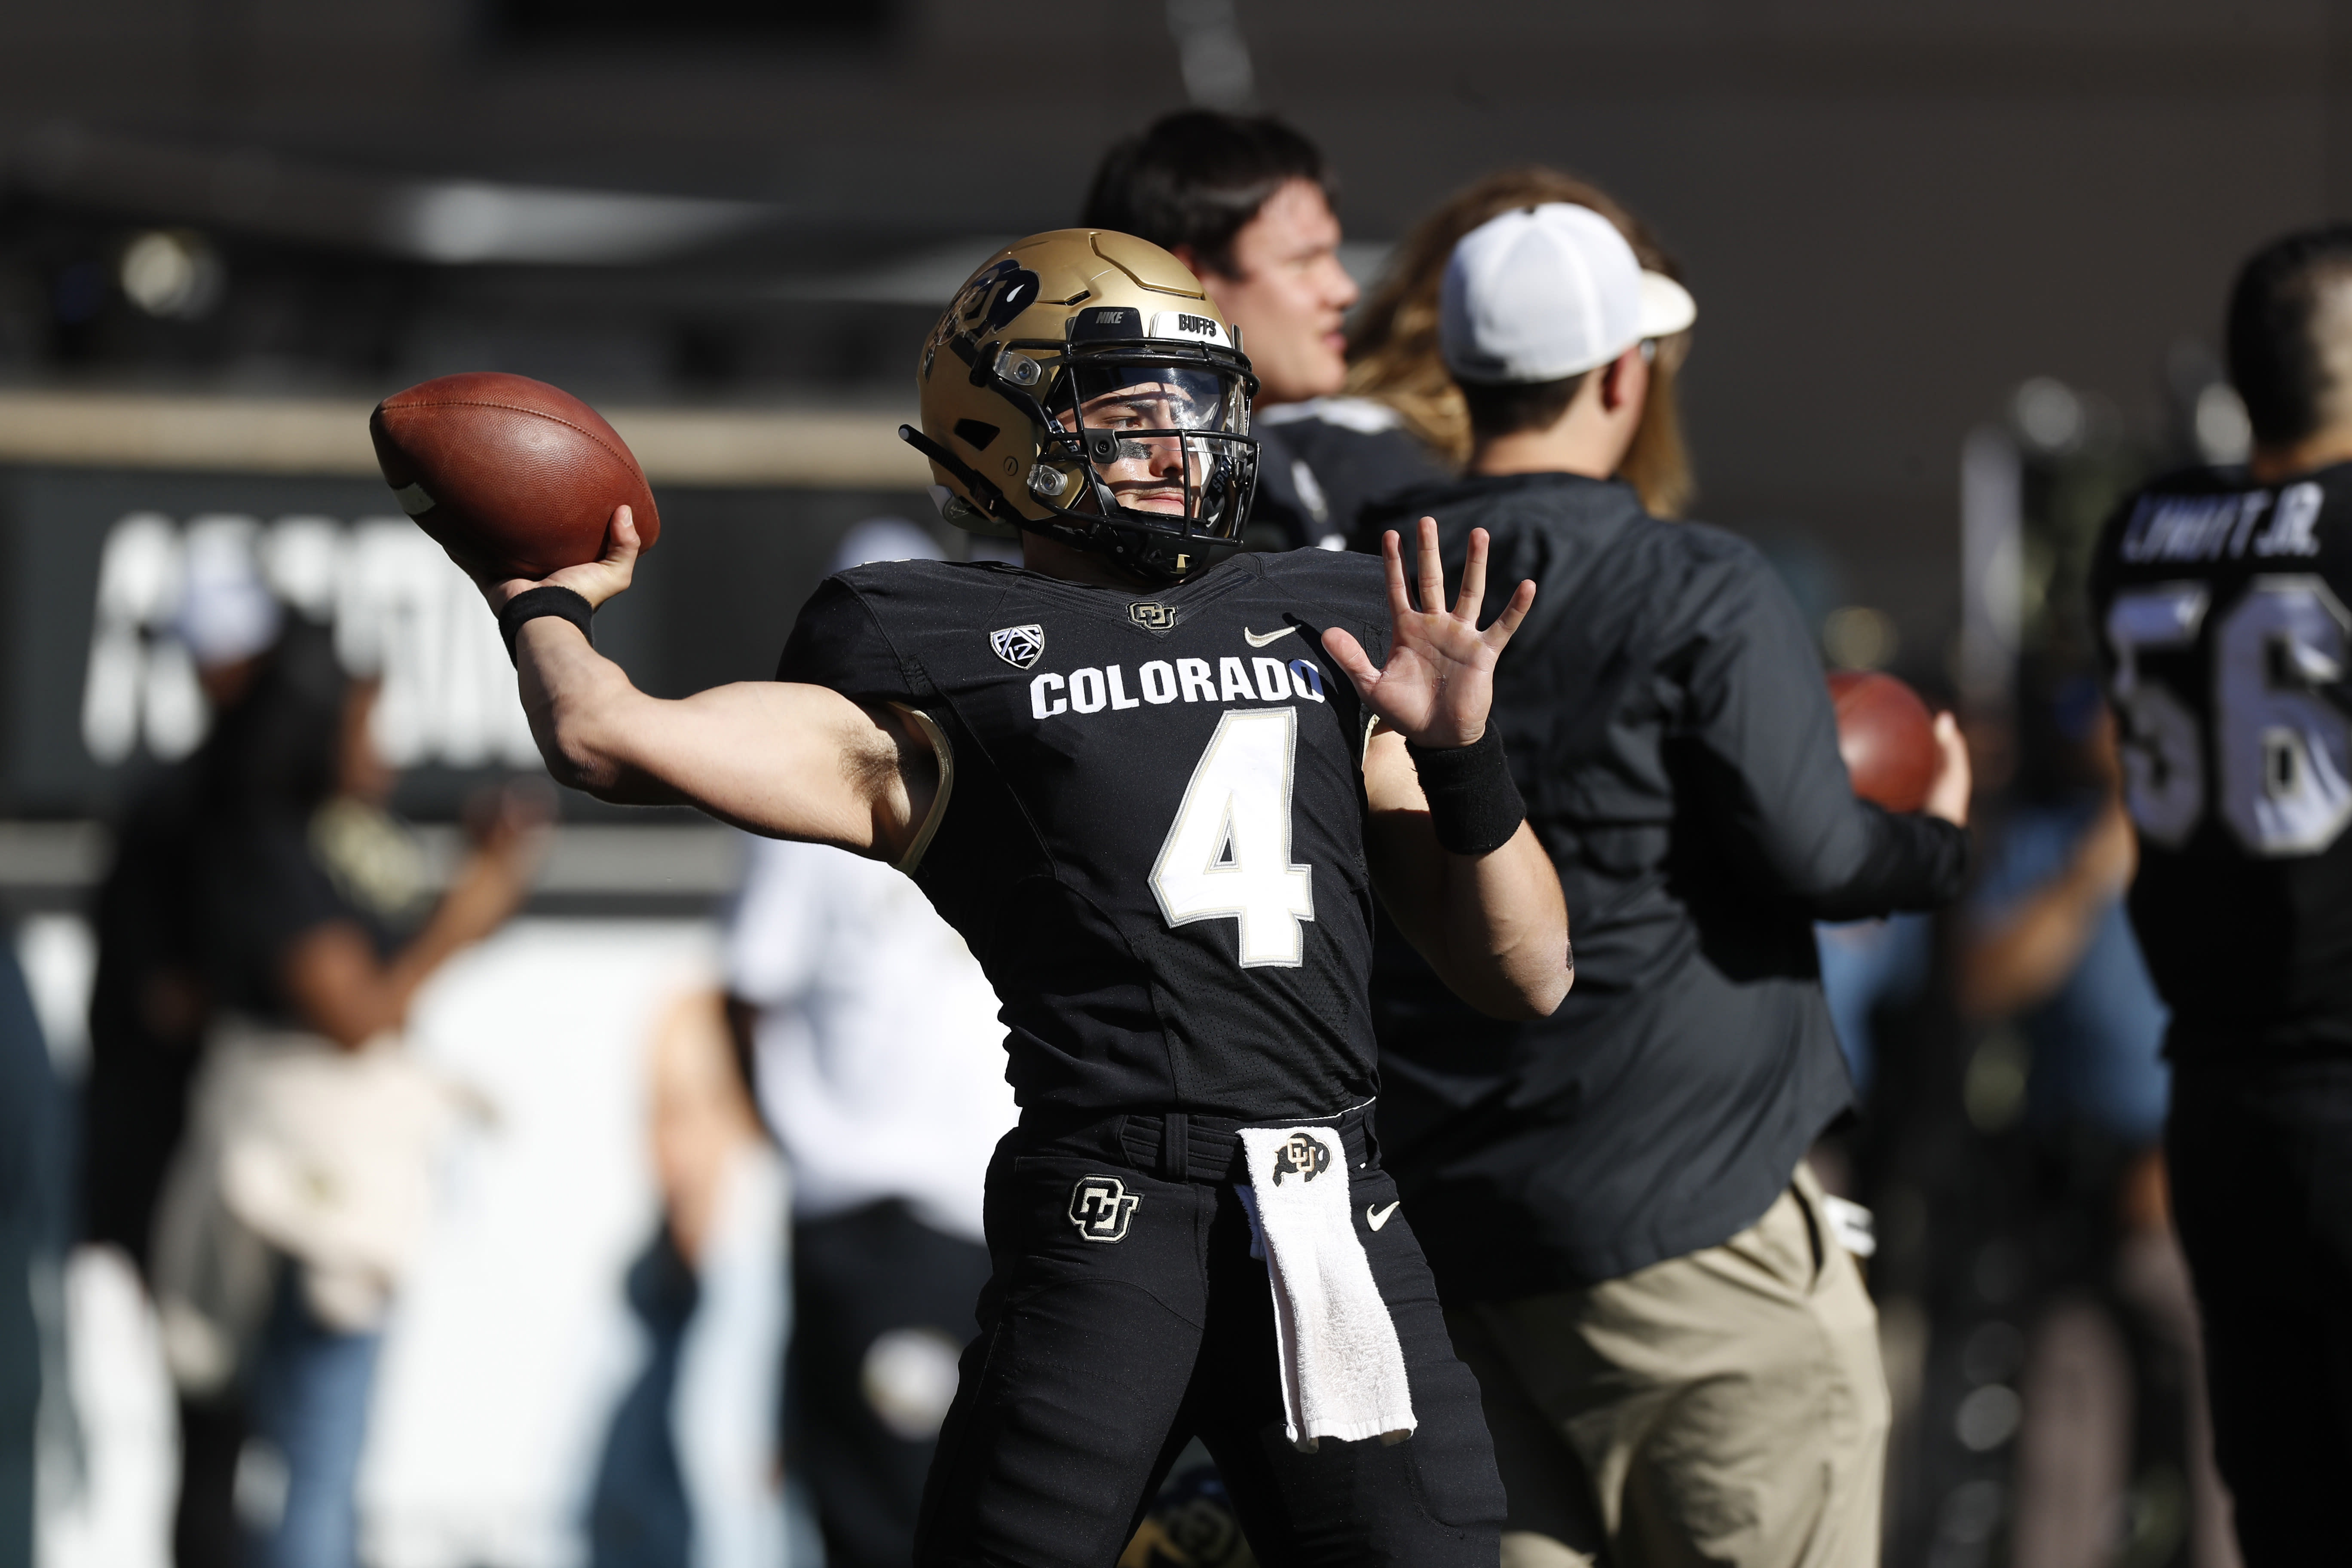 FILE—Colorado quarterback Sam Noyer warms up before an NCAA college football game Saturday, Nov. 9, 2019, in Boulder, Colo. Noyer, who left the university in search of a chance to quarterback a team, has returned to Colorado to vie for the first-string play caller position after a call from the university's new football coaching staff. (AP Photo/David Zalubowski, File)